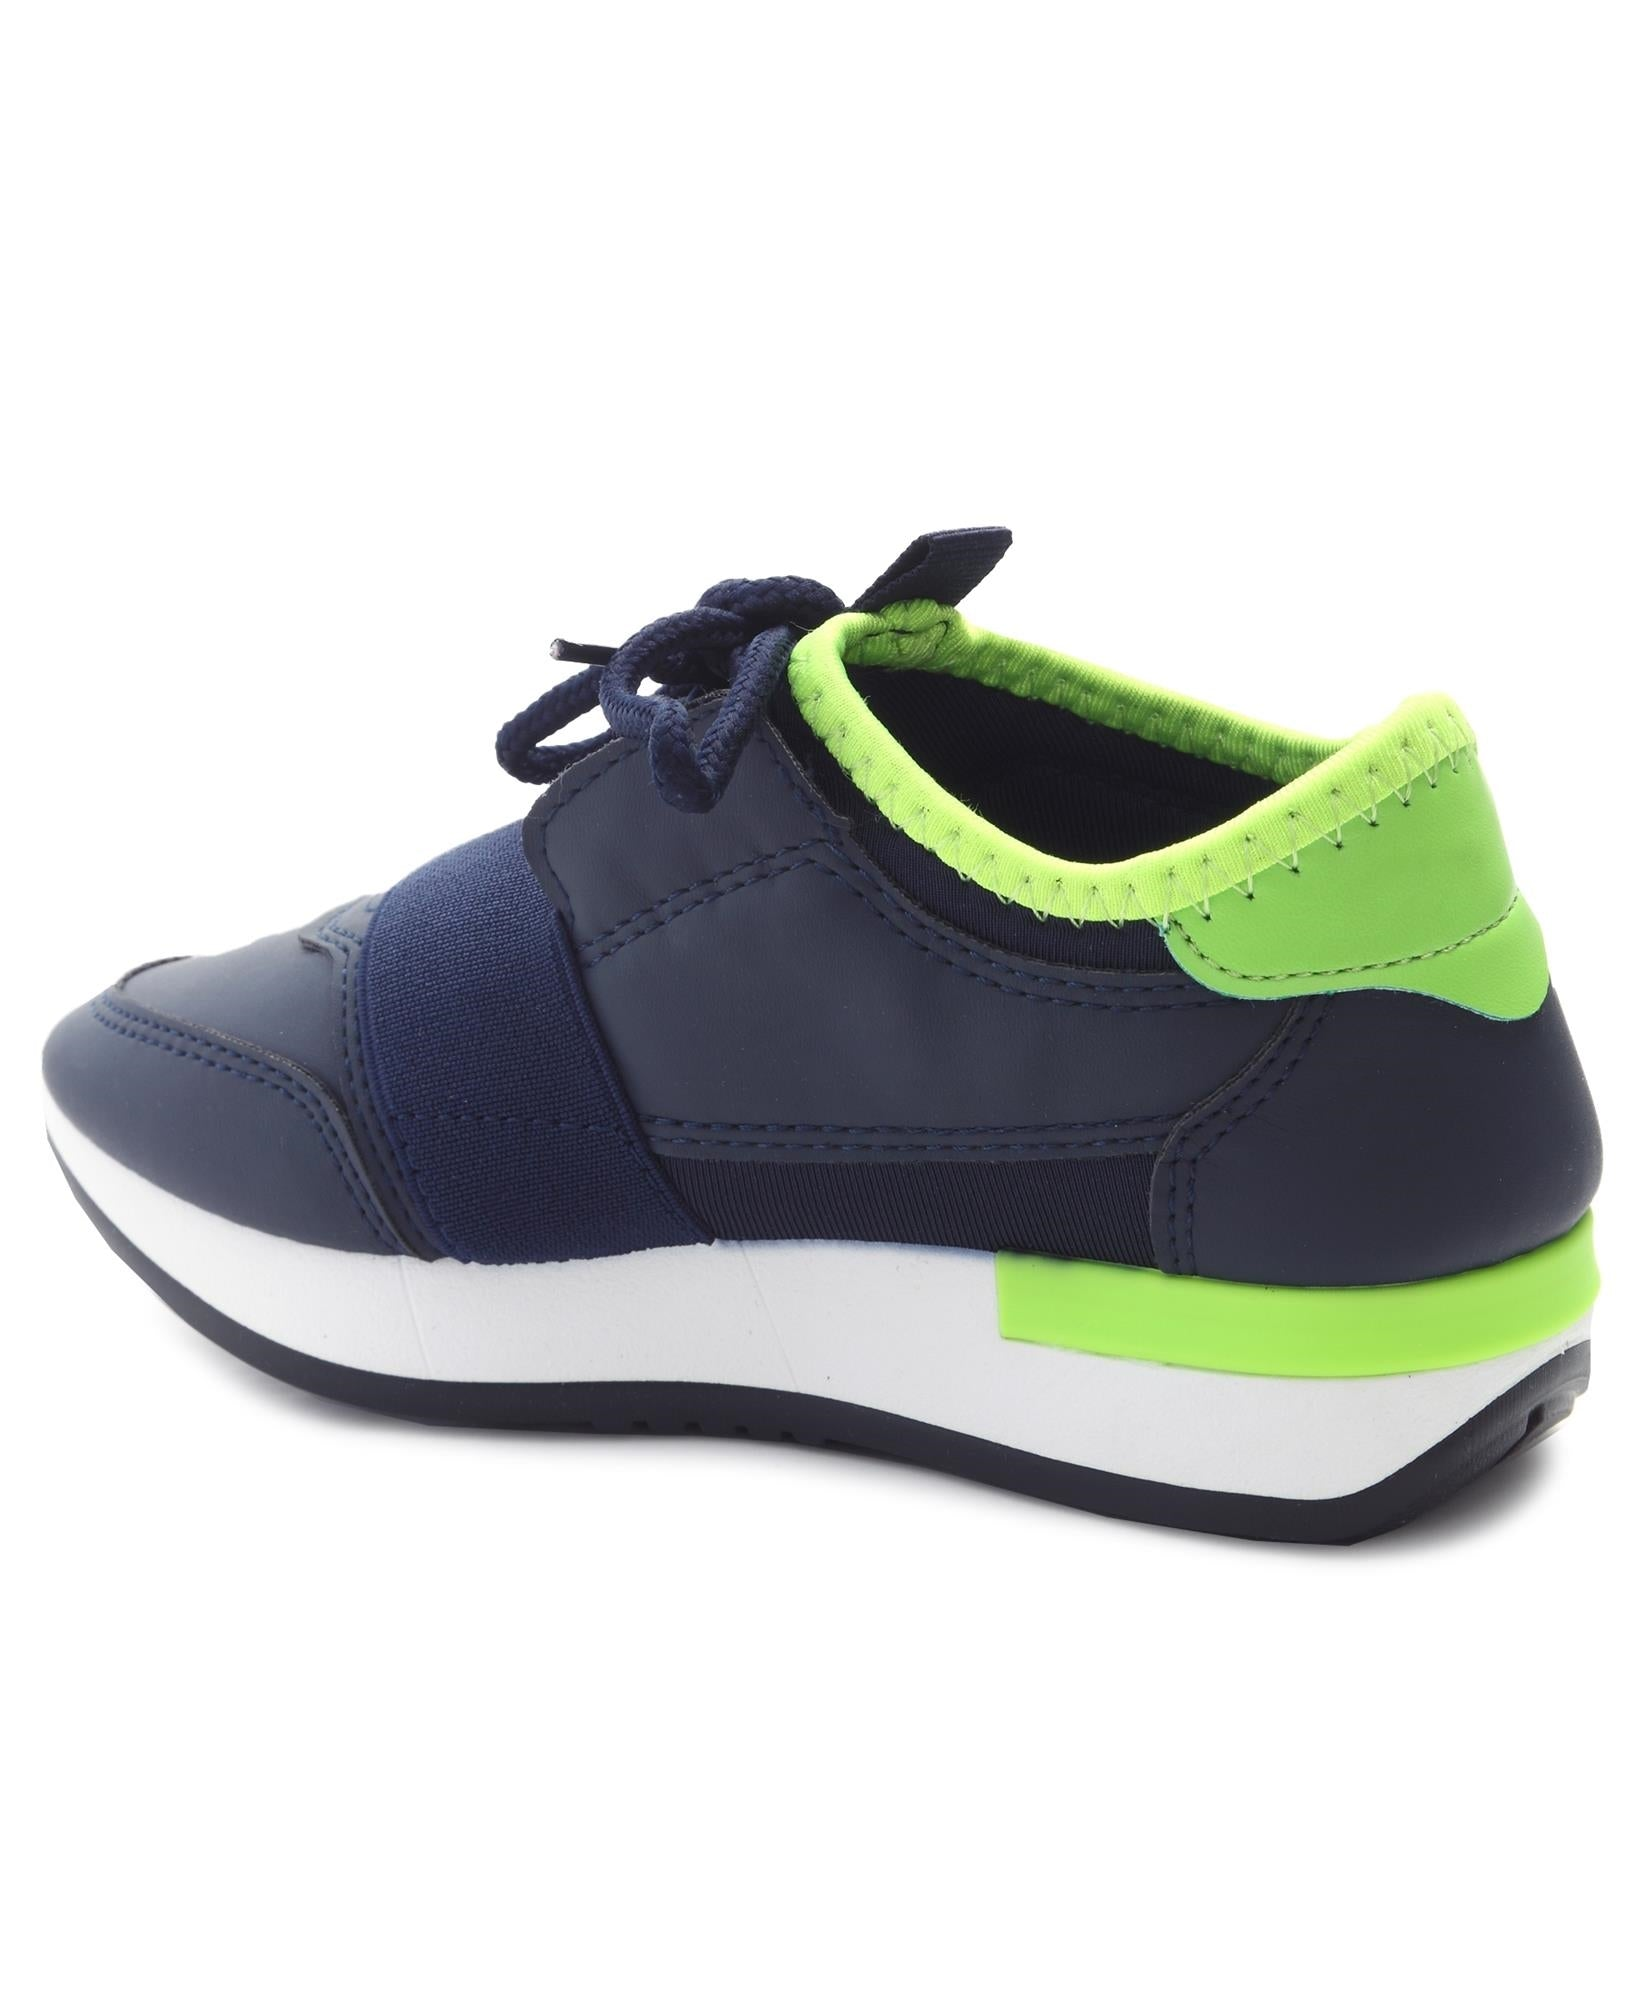 Girls Storm Funky Sneakers - Navy